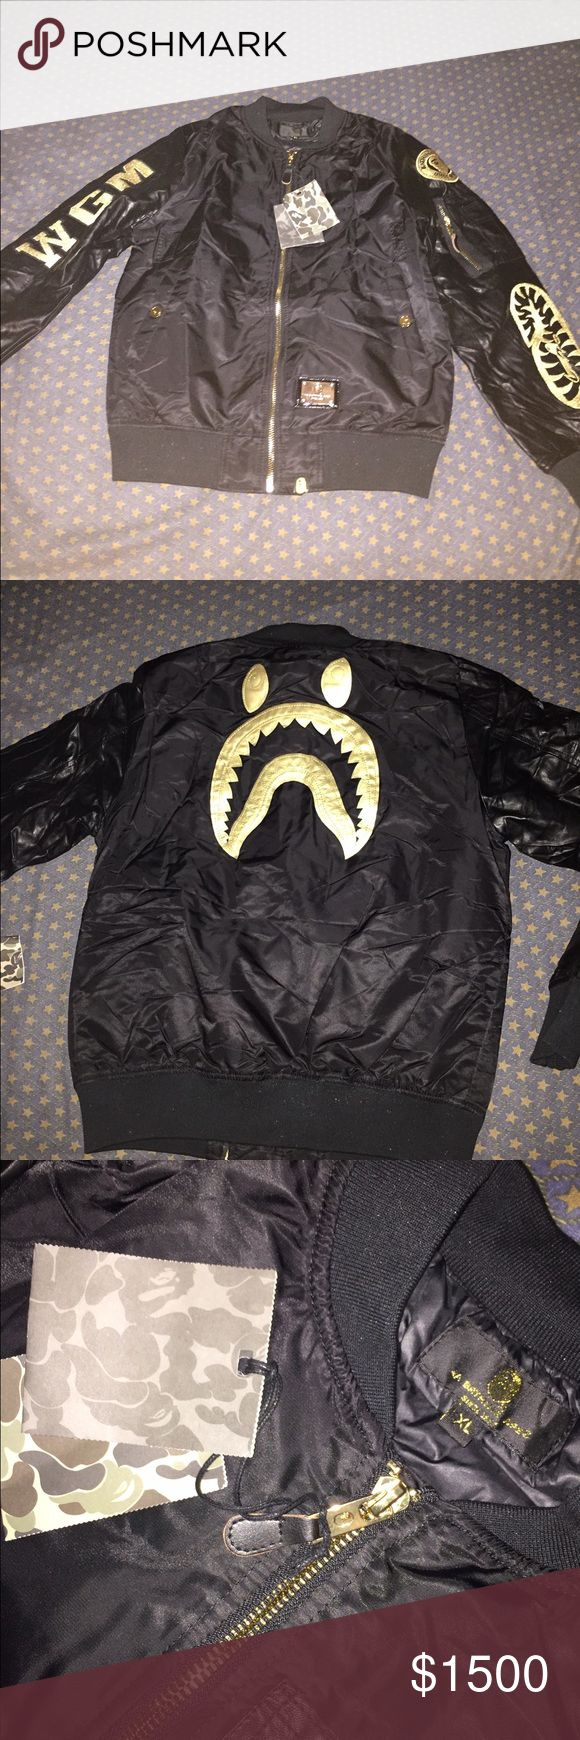 BAPE Black Bomber Jacket BAPE Black Jacket/Gold. Bomber. New . DeadStock . Size XL (Fits like a Large) Bape Jackets & Coats Bomber & Varsity